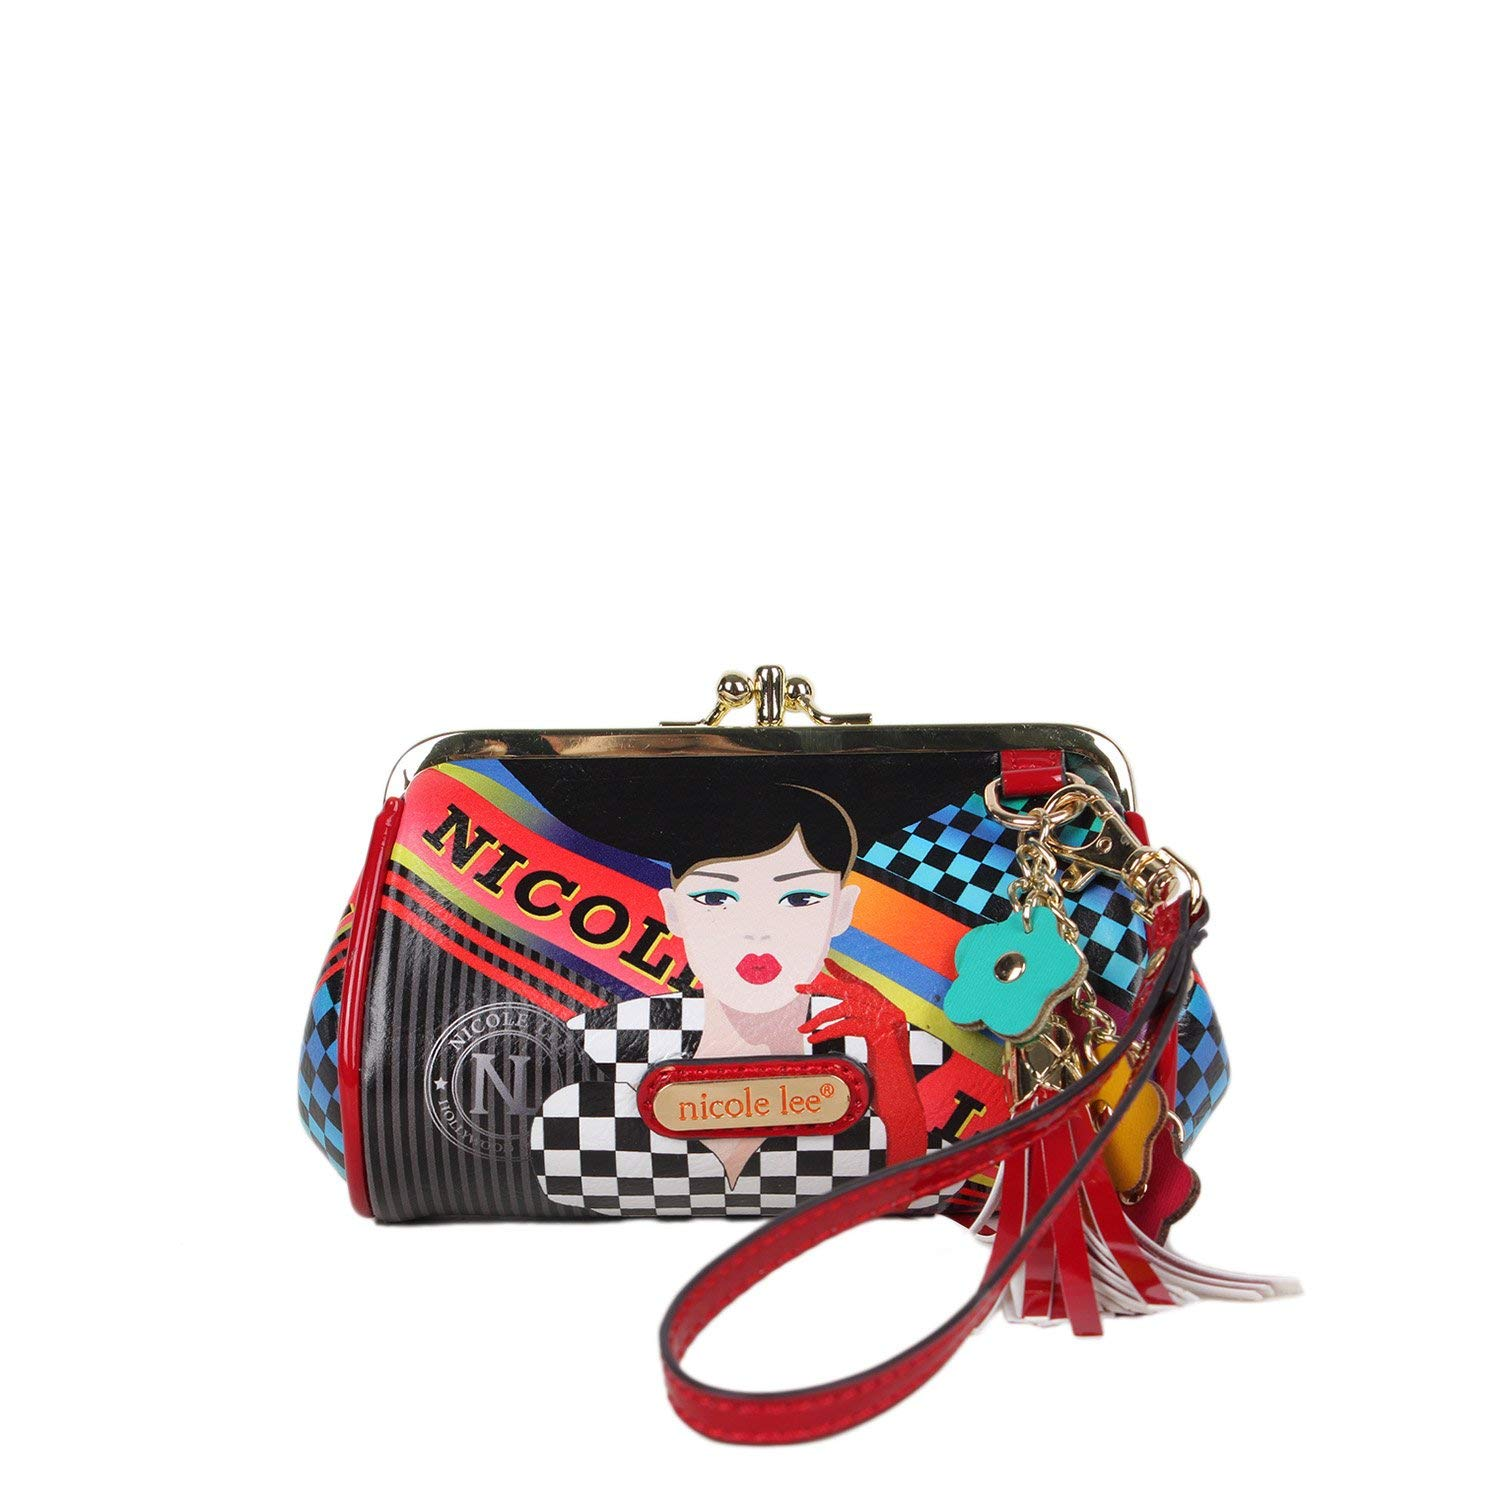 3882dc249e Get Quotations · Printed Coin Purse with Kiss-lock Closure and Floral  Tassel Wristlet Mini Bag